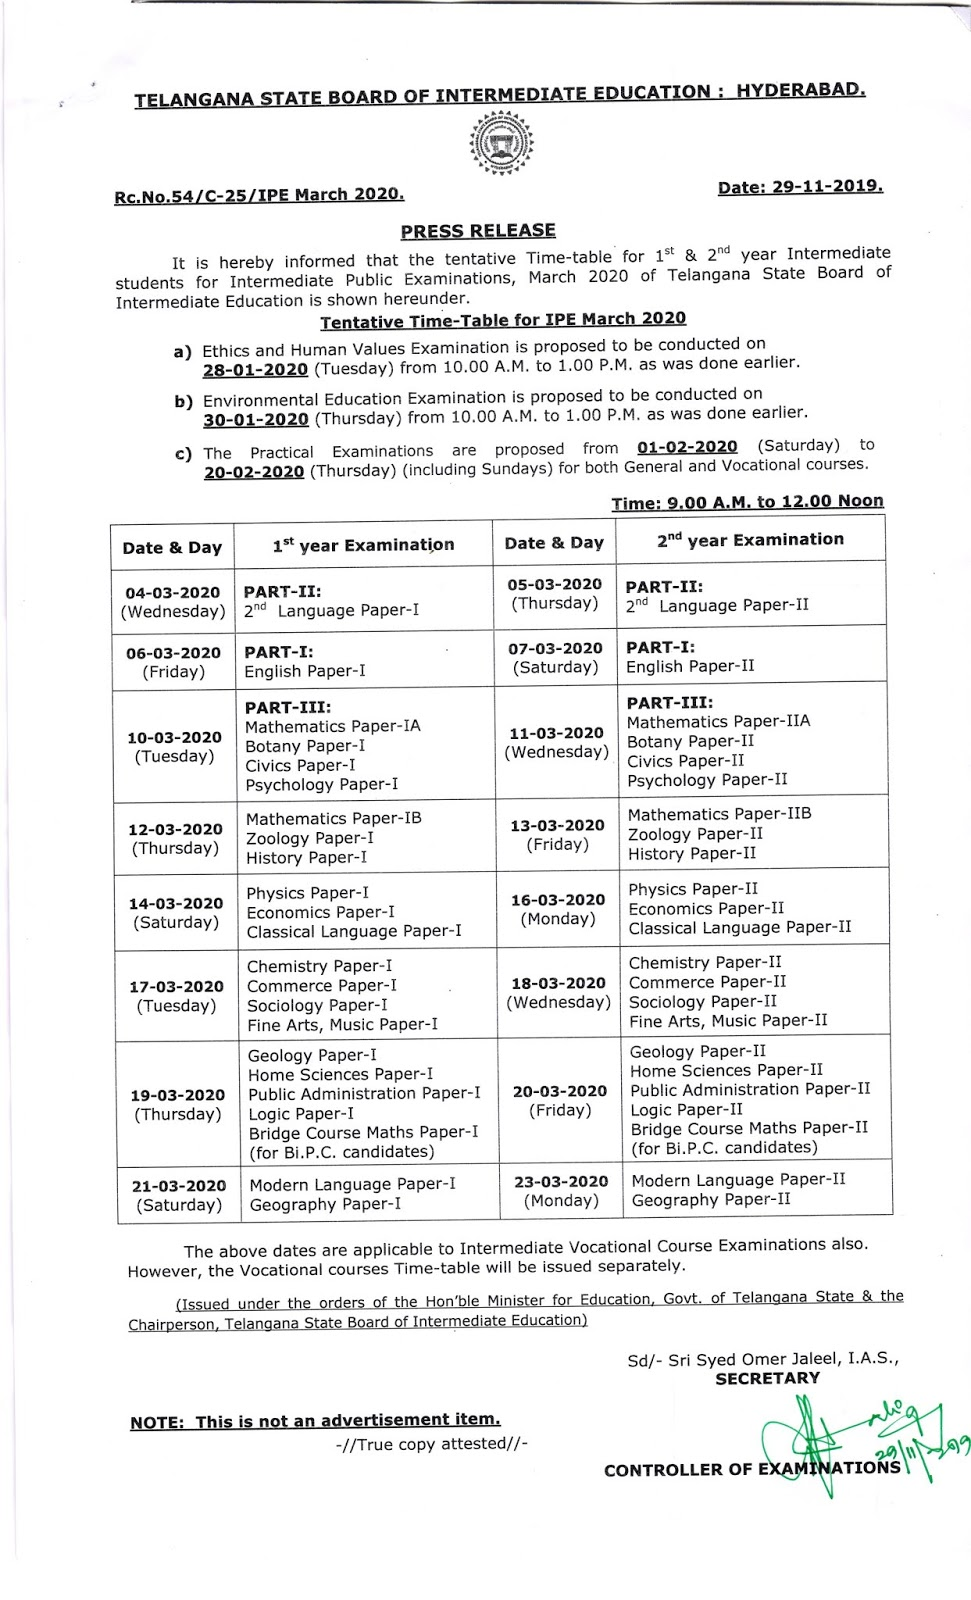 TS Intermediate Examination 1st Year and 2nd Year Time Table  2020